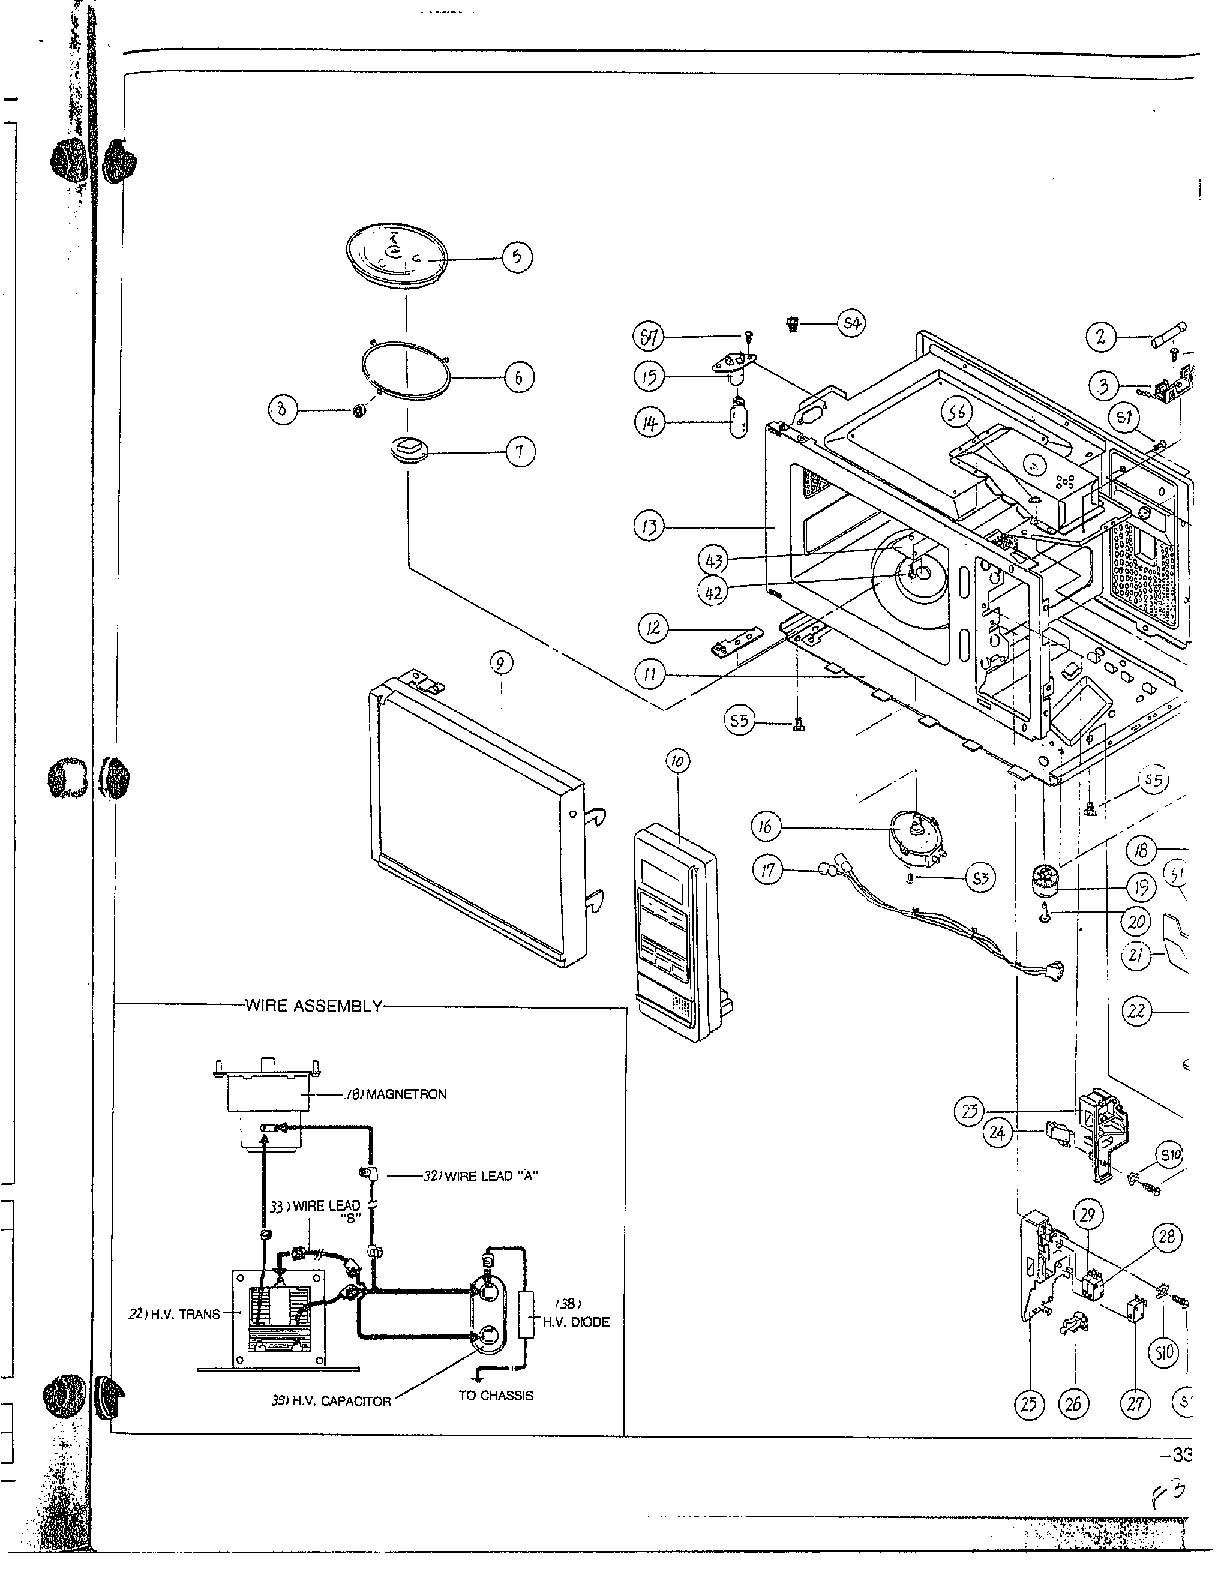 Samsung Microwave Parts Diagram